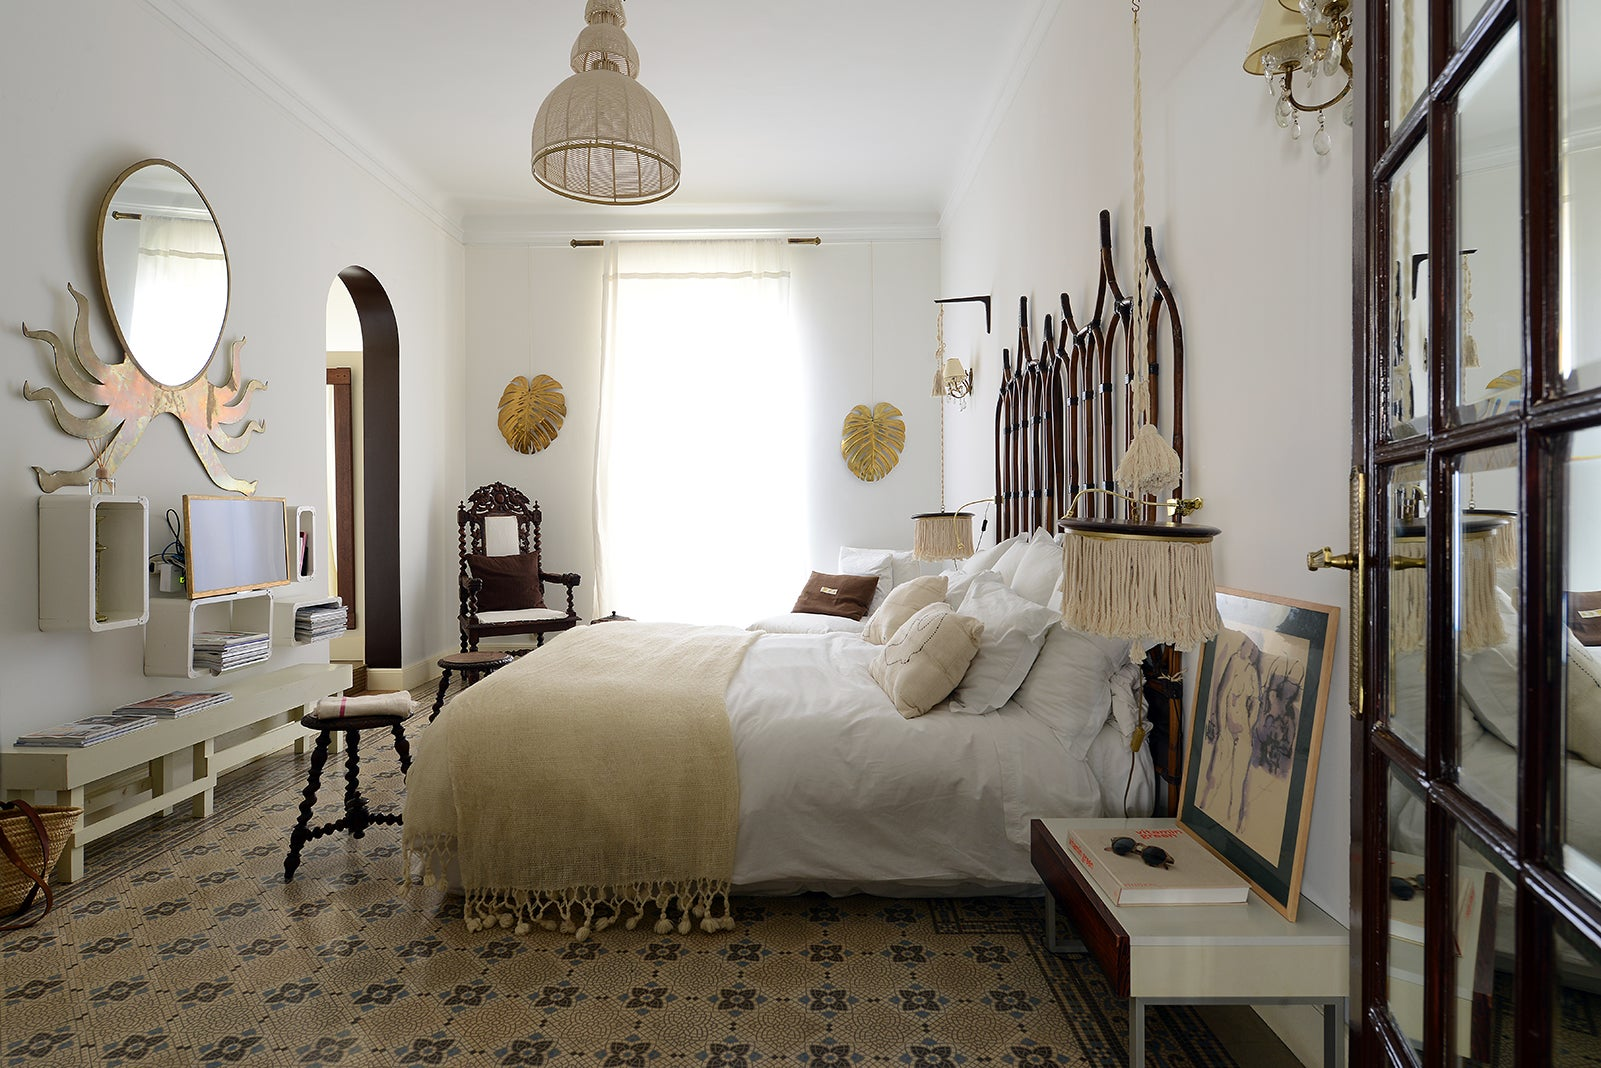 bedroom with tile floor and woven pendant light